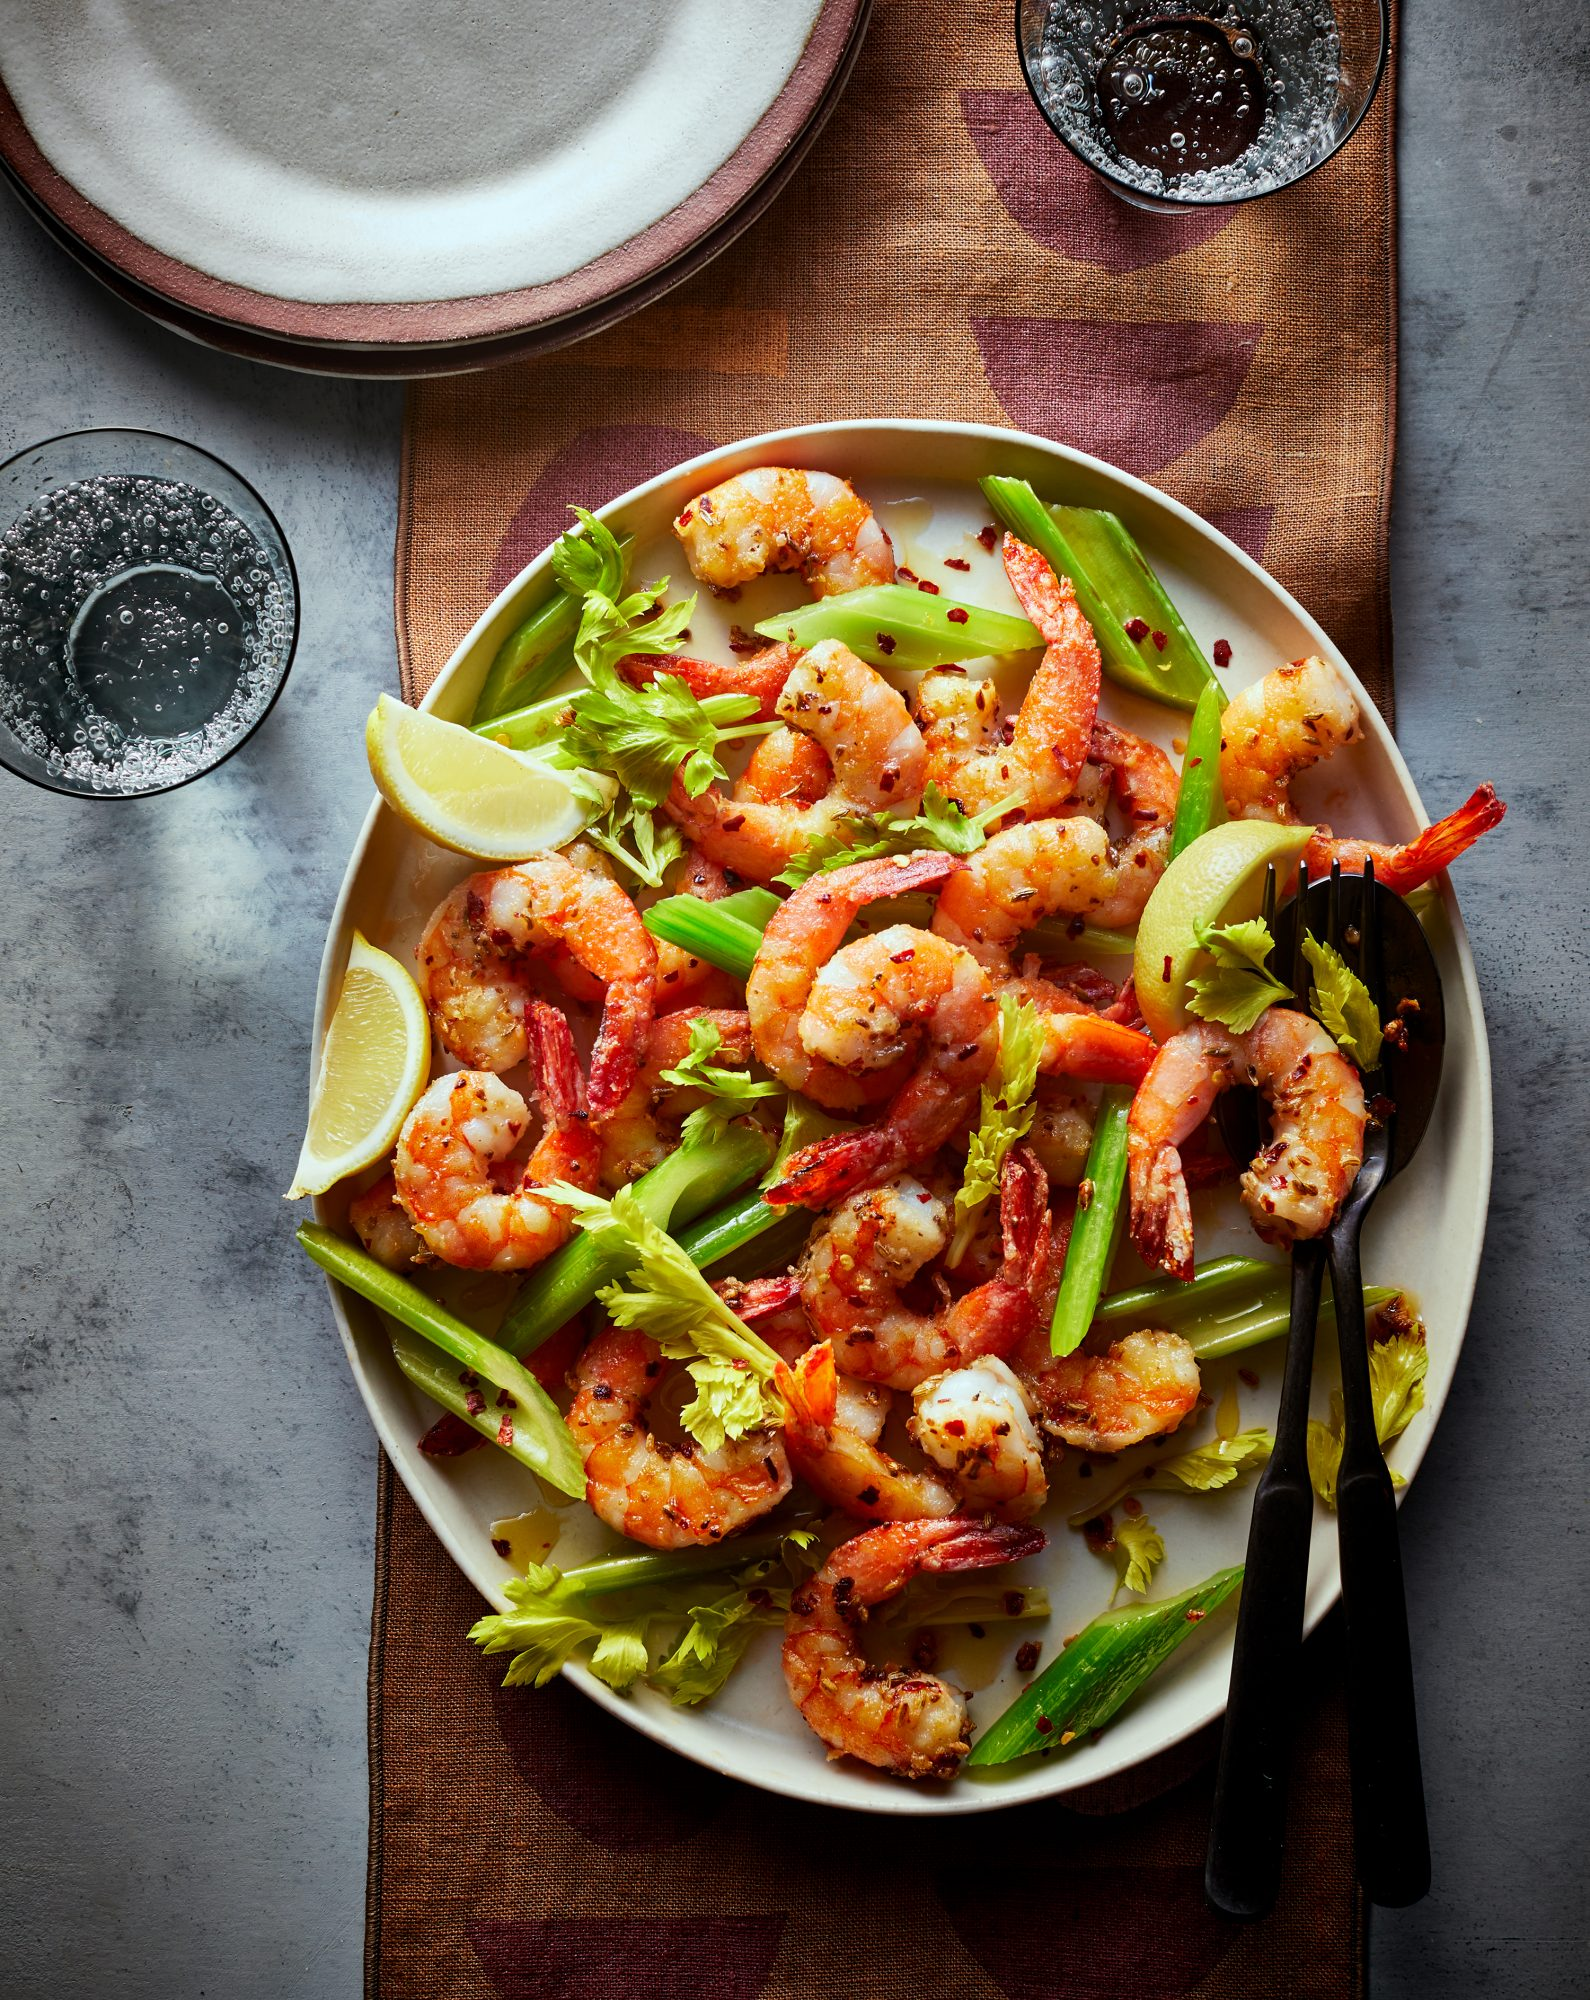 Spicy Fennel Fried Shrimp and Celery